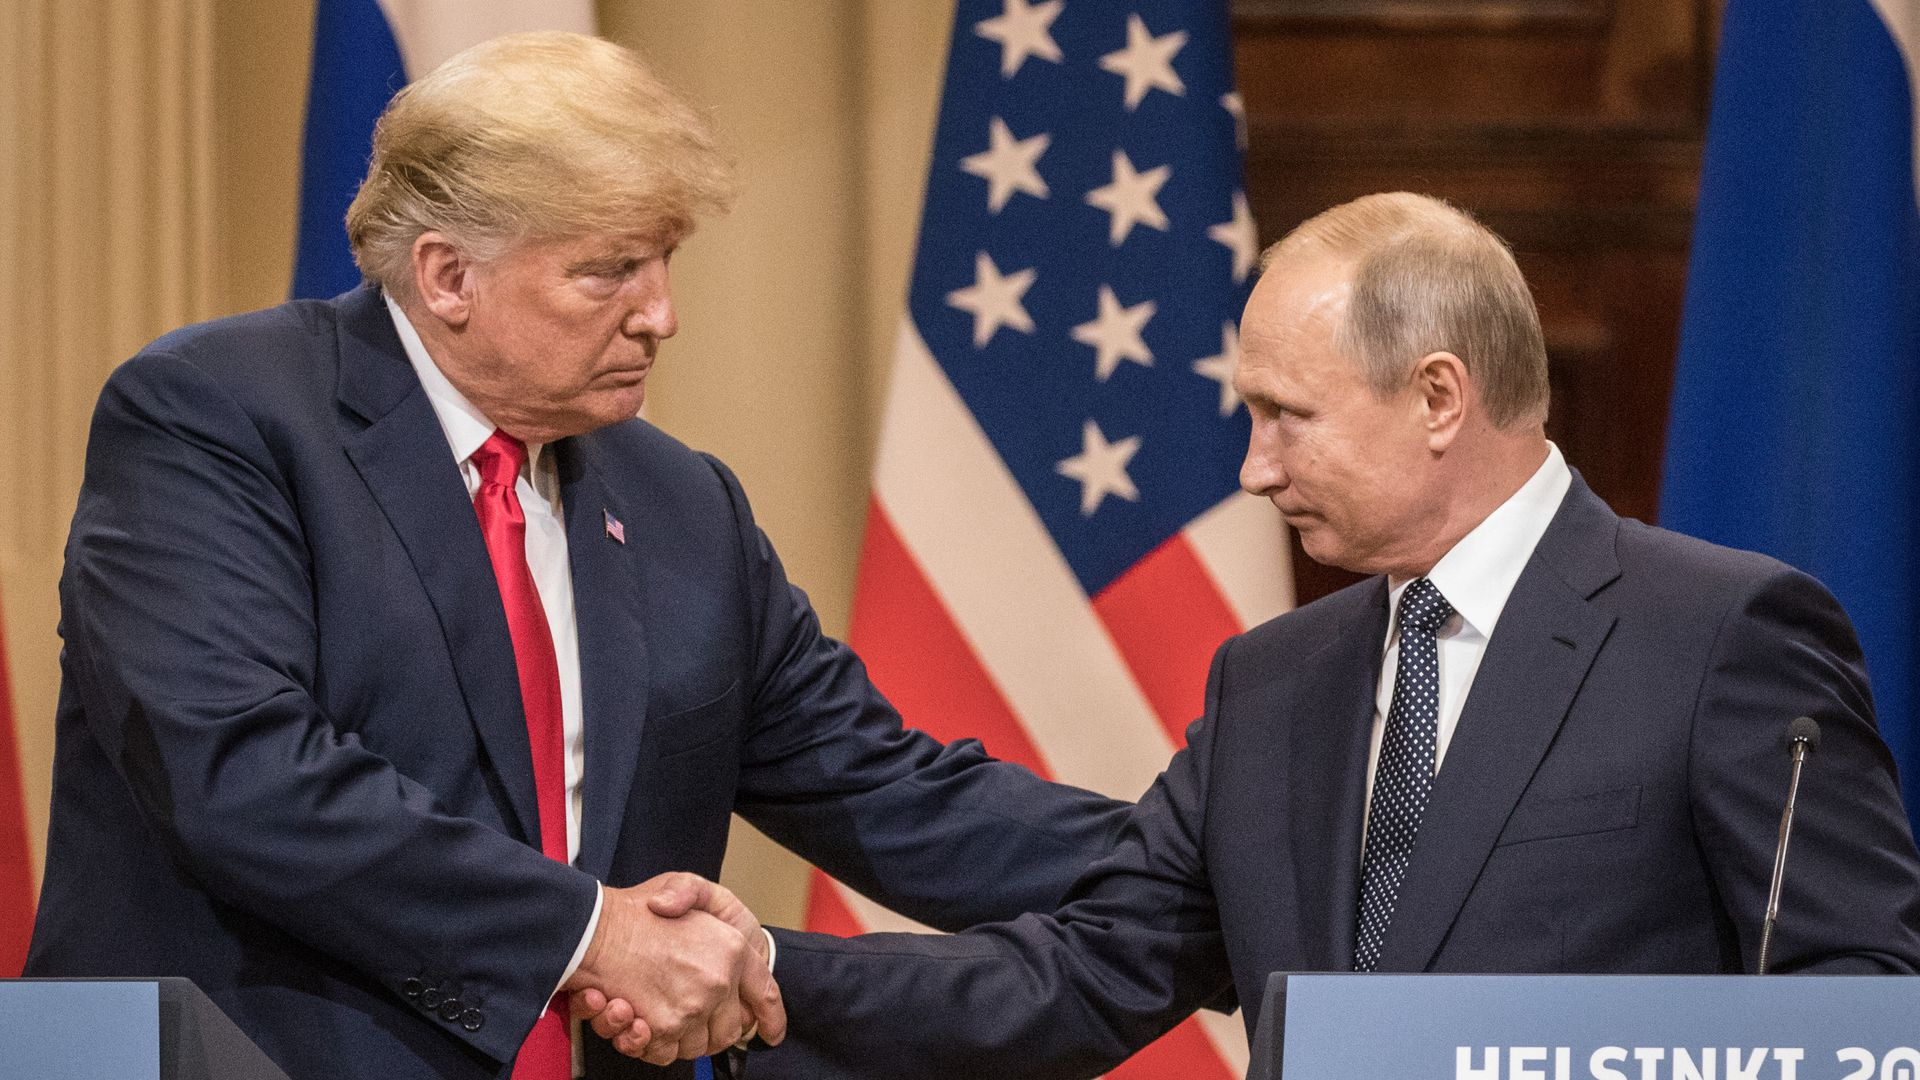 Putin shaking hands with Trump in Helsinki